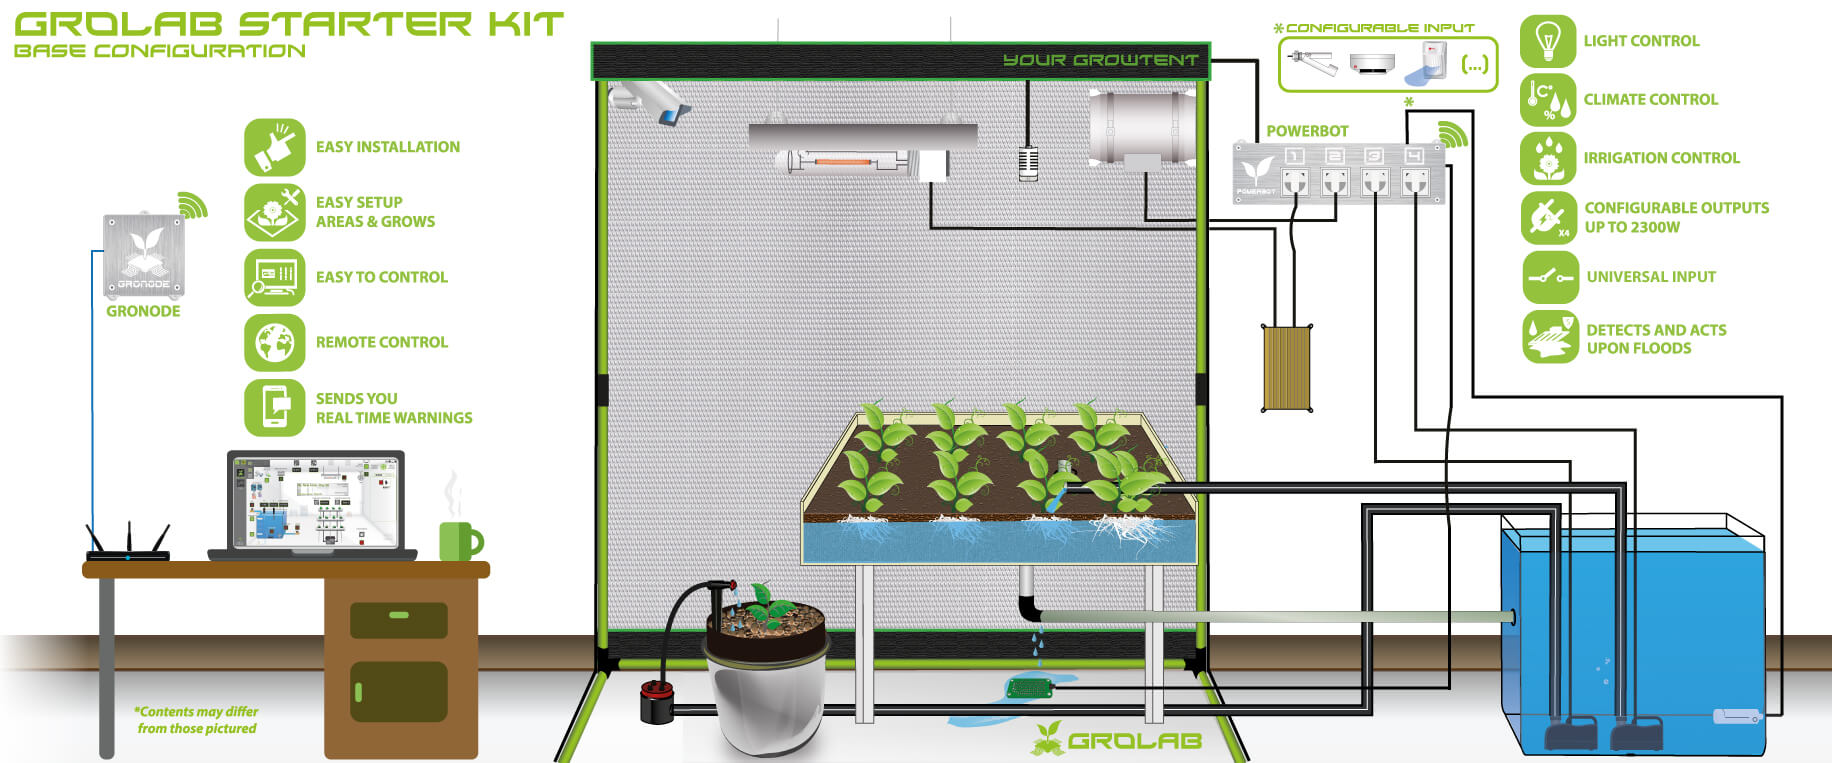 GroLab Starter Kit Base Configuration, with PowerBot controlling light, irrigation and ventilation